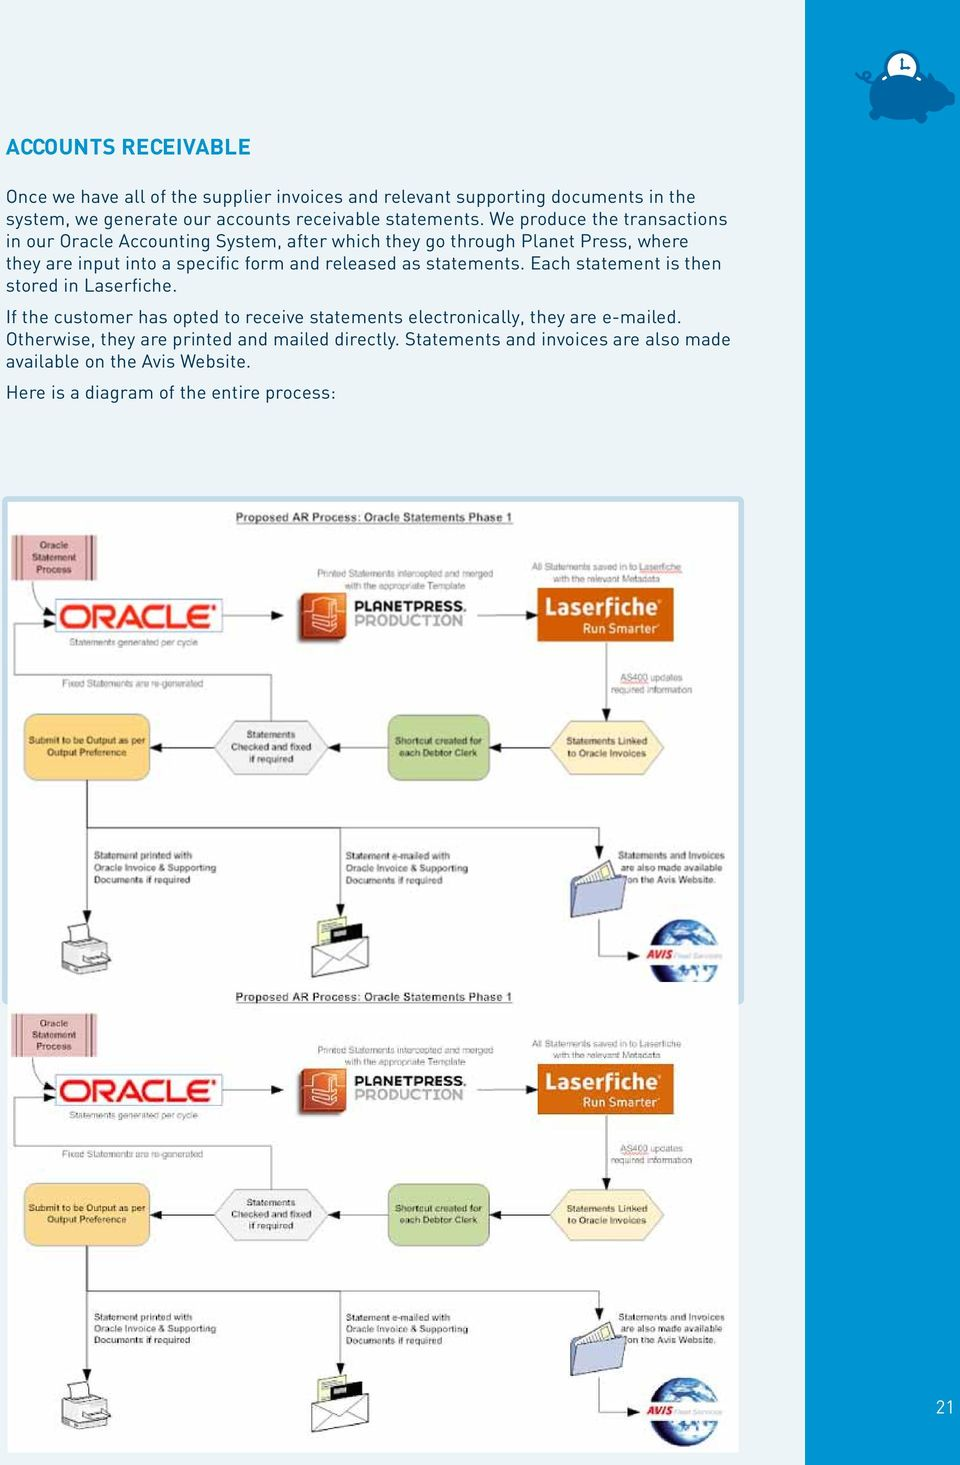 We produce the transactions in our Oracle Accounting System, after which they go through Planet Press, where they are input into a specific form and